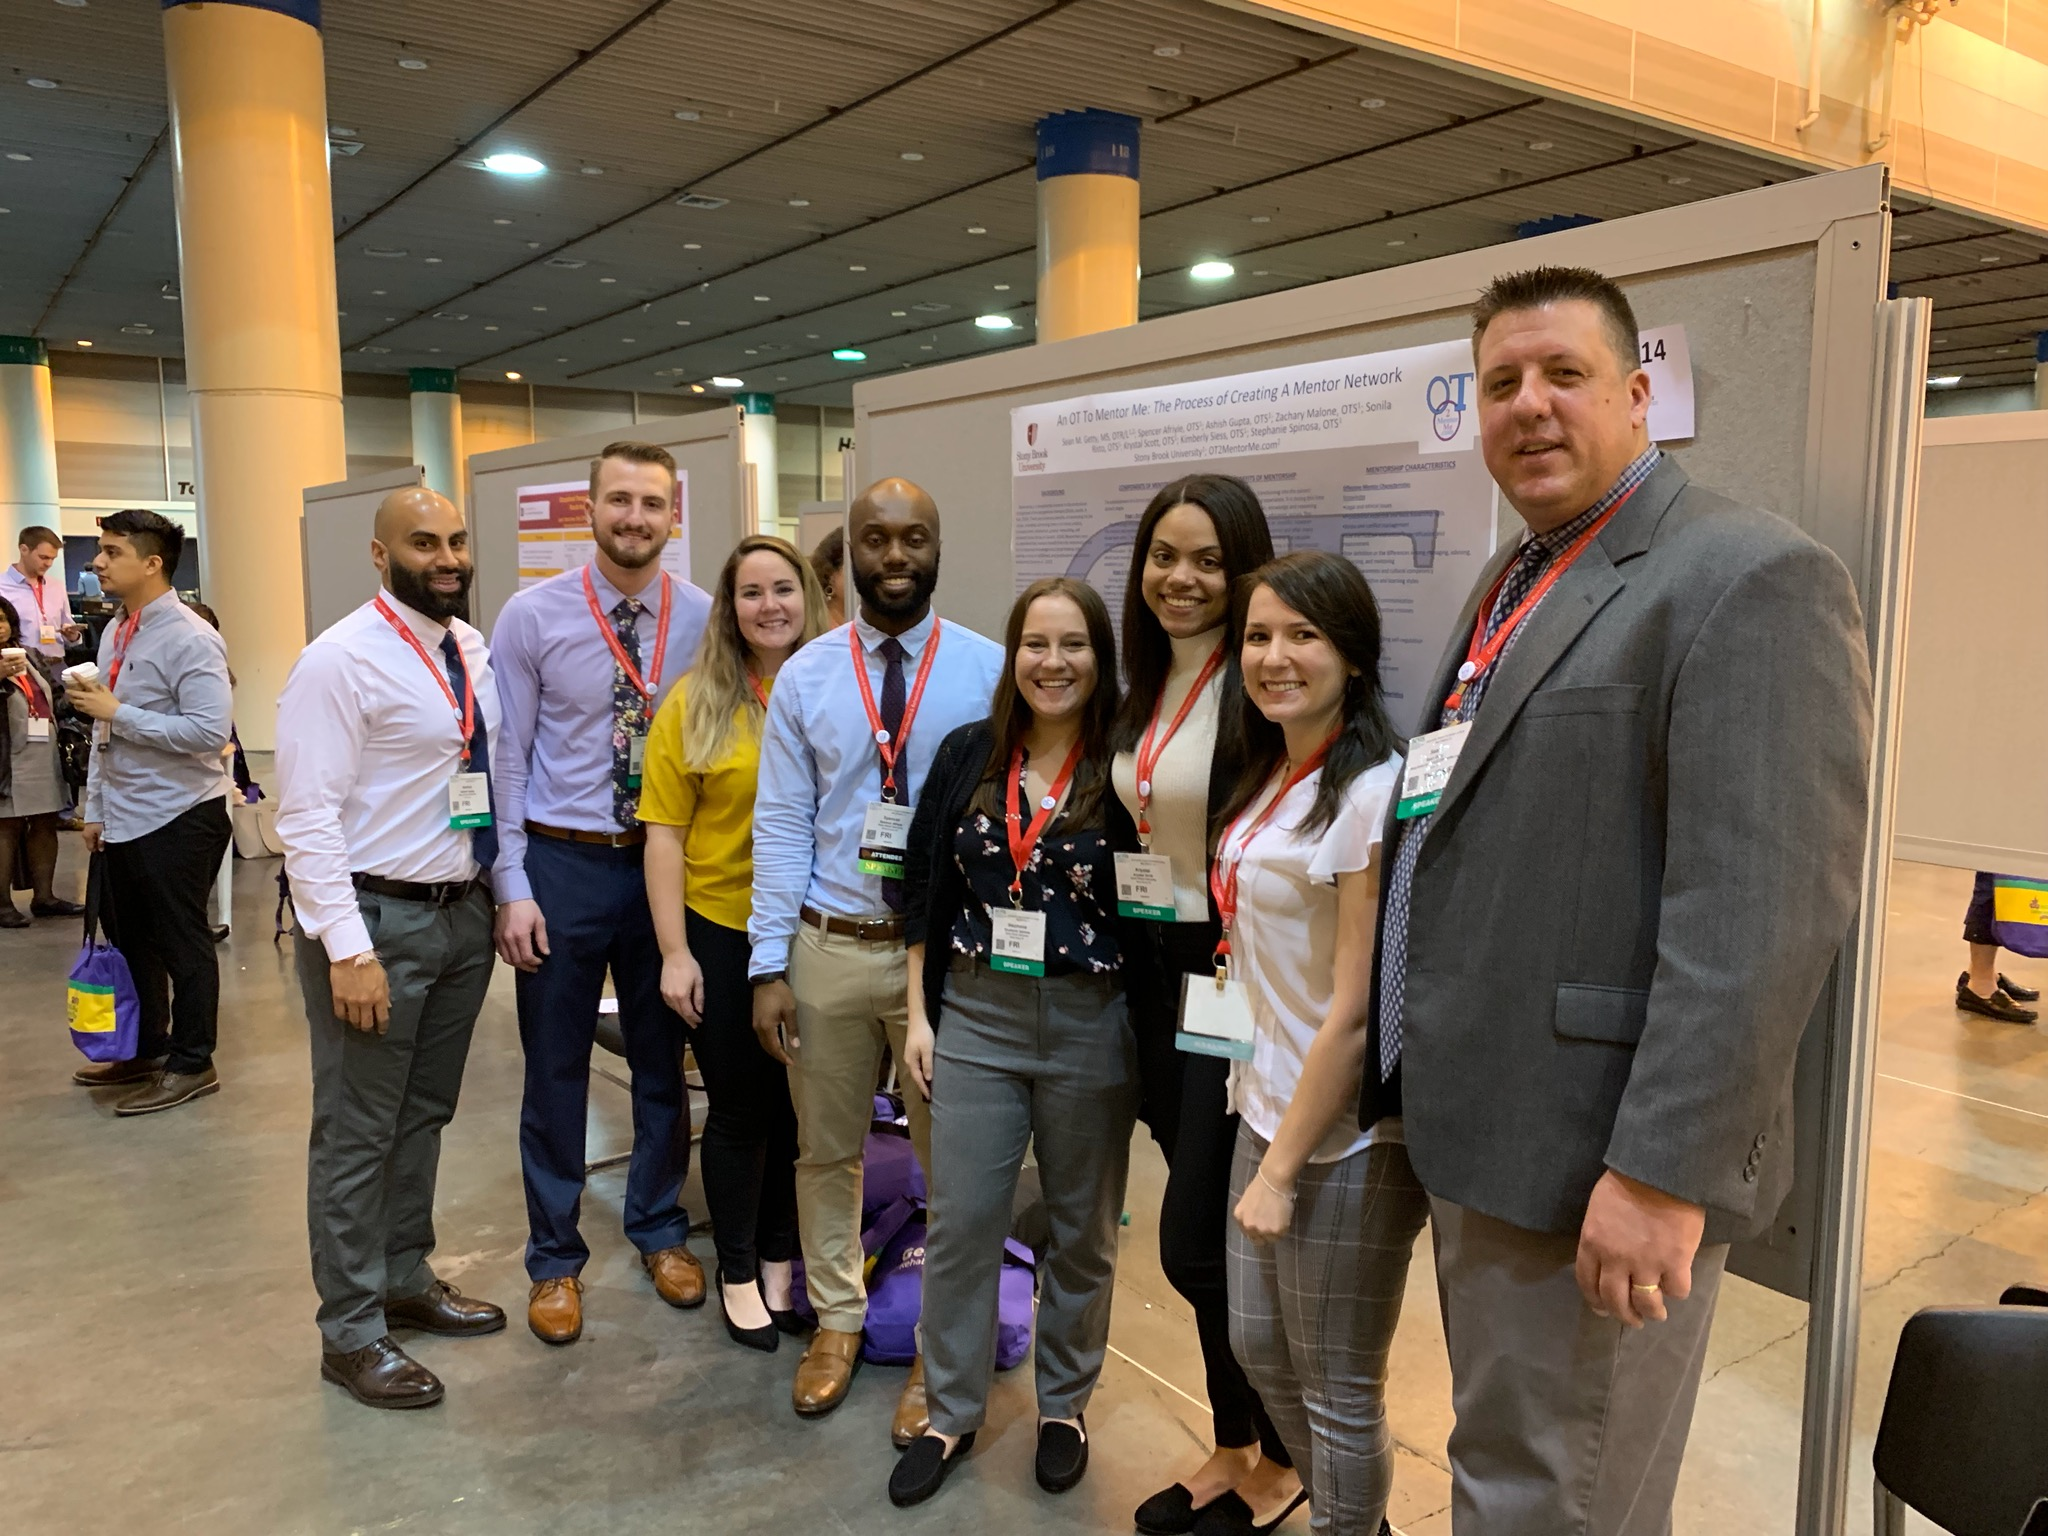 Touro Alum Sean Getty (far right) at the 2019 American Occupational Therapy Association\'s Annual Conference.